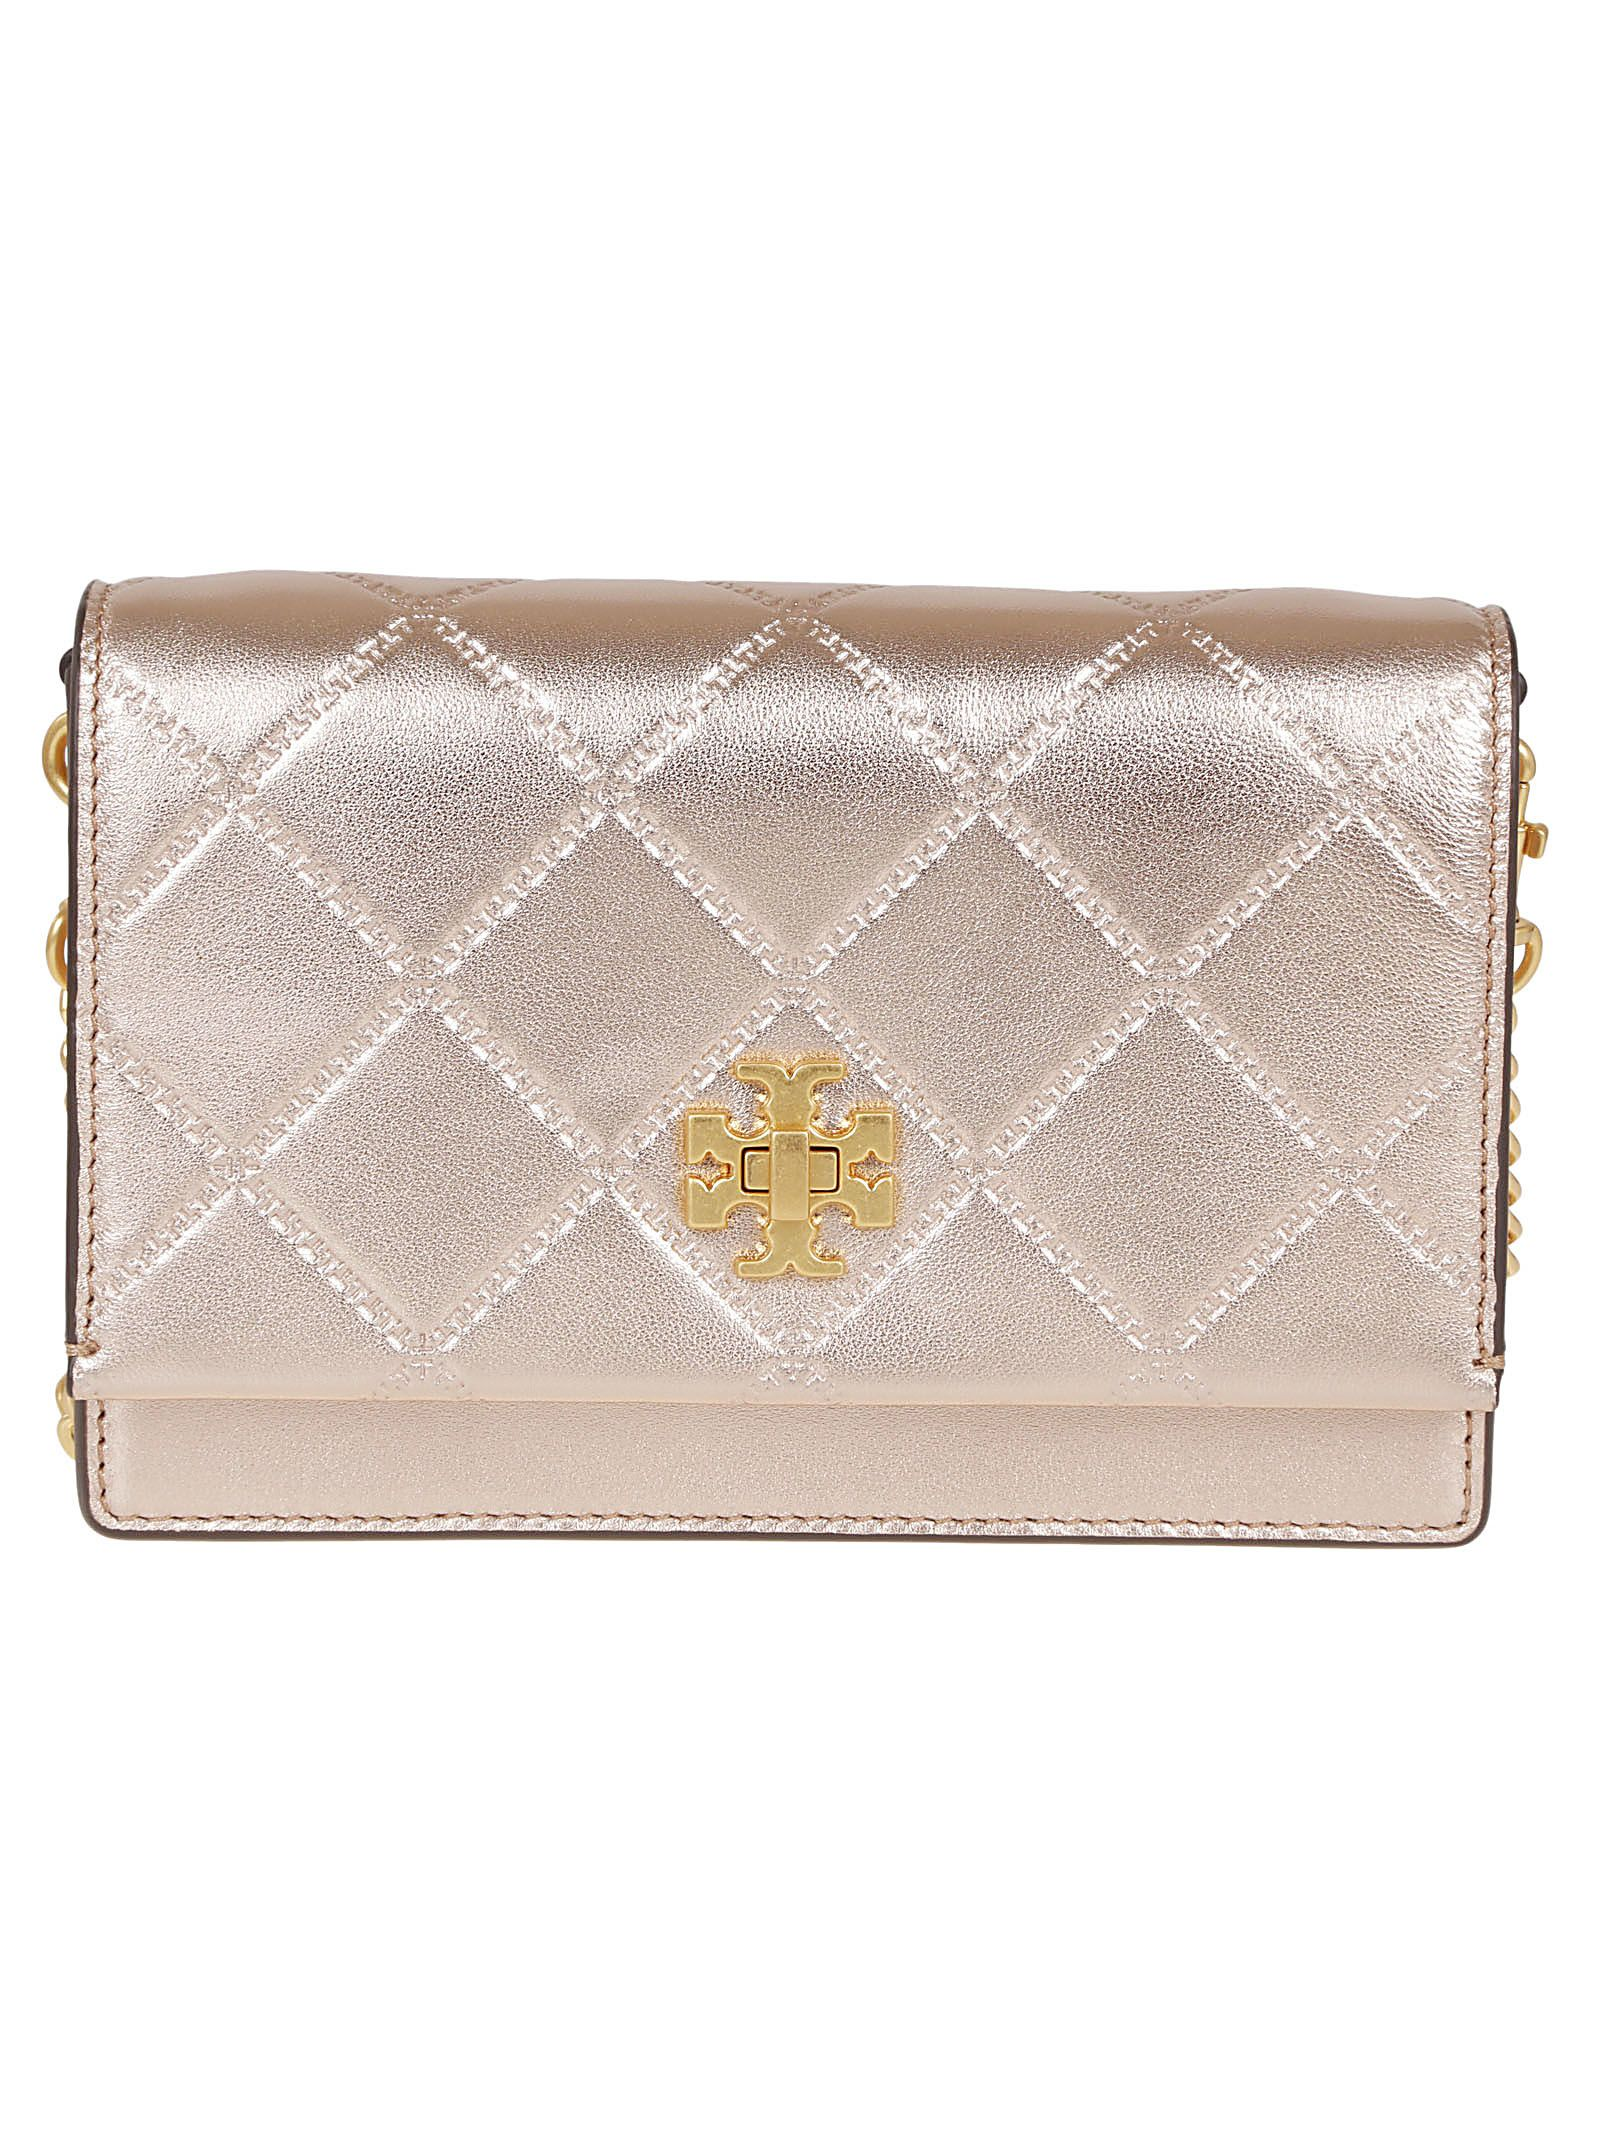 Georgia Mini Shoulder Bag in Rosa